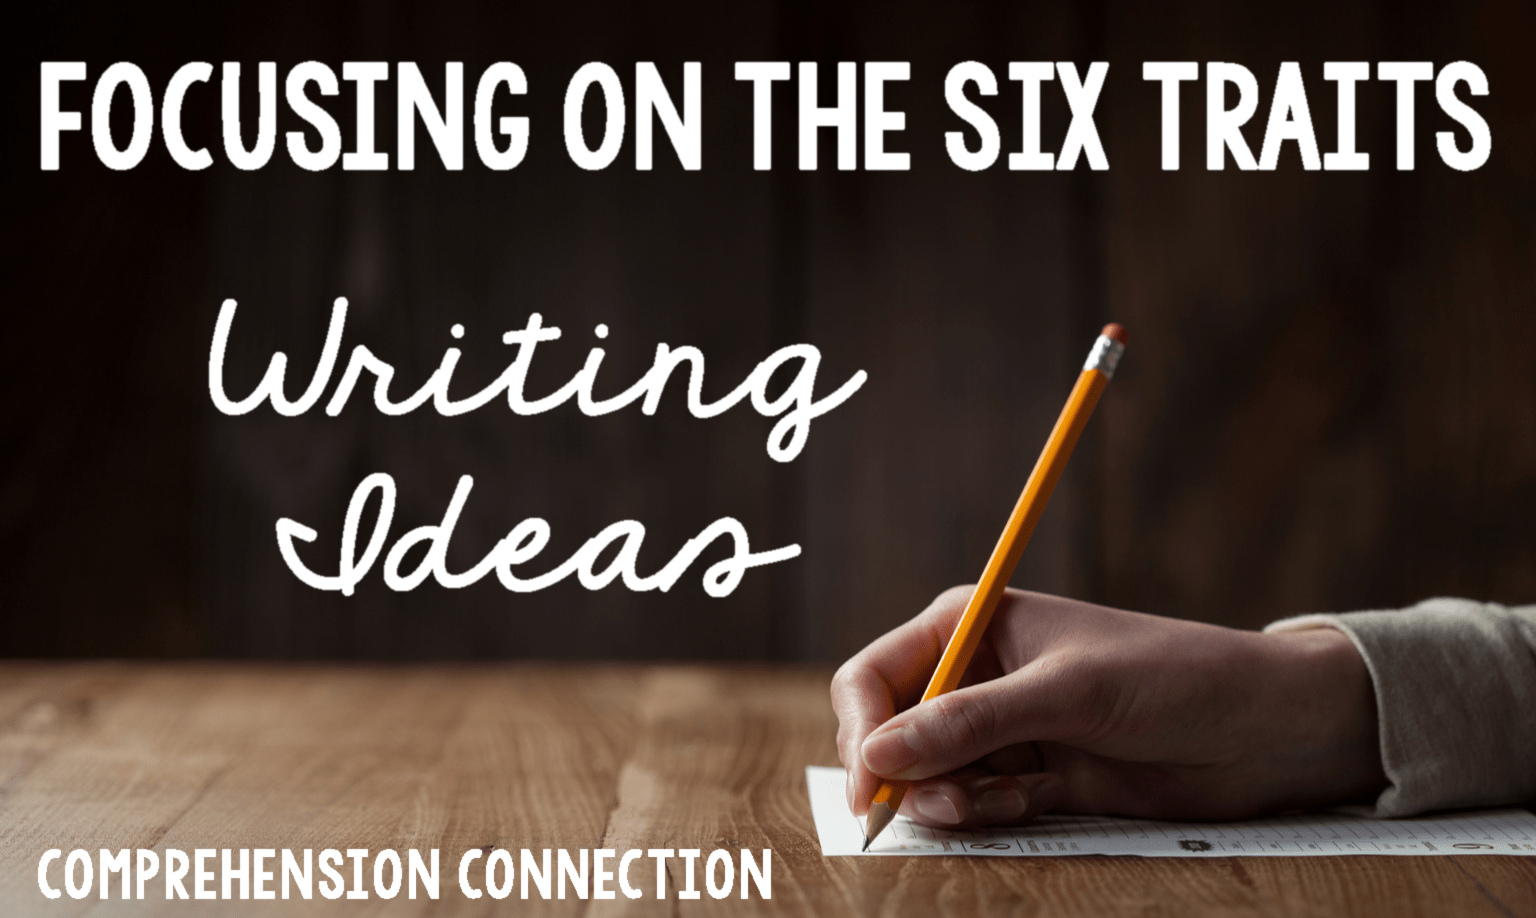 So often, children struggle to come up with writing ideas. In this post, I feature book titles to use as mentor texts for writing ideas.